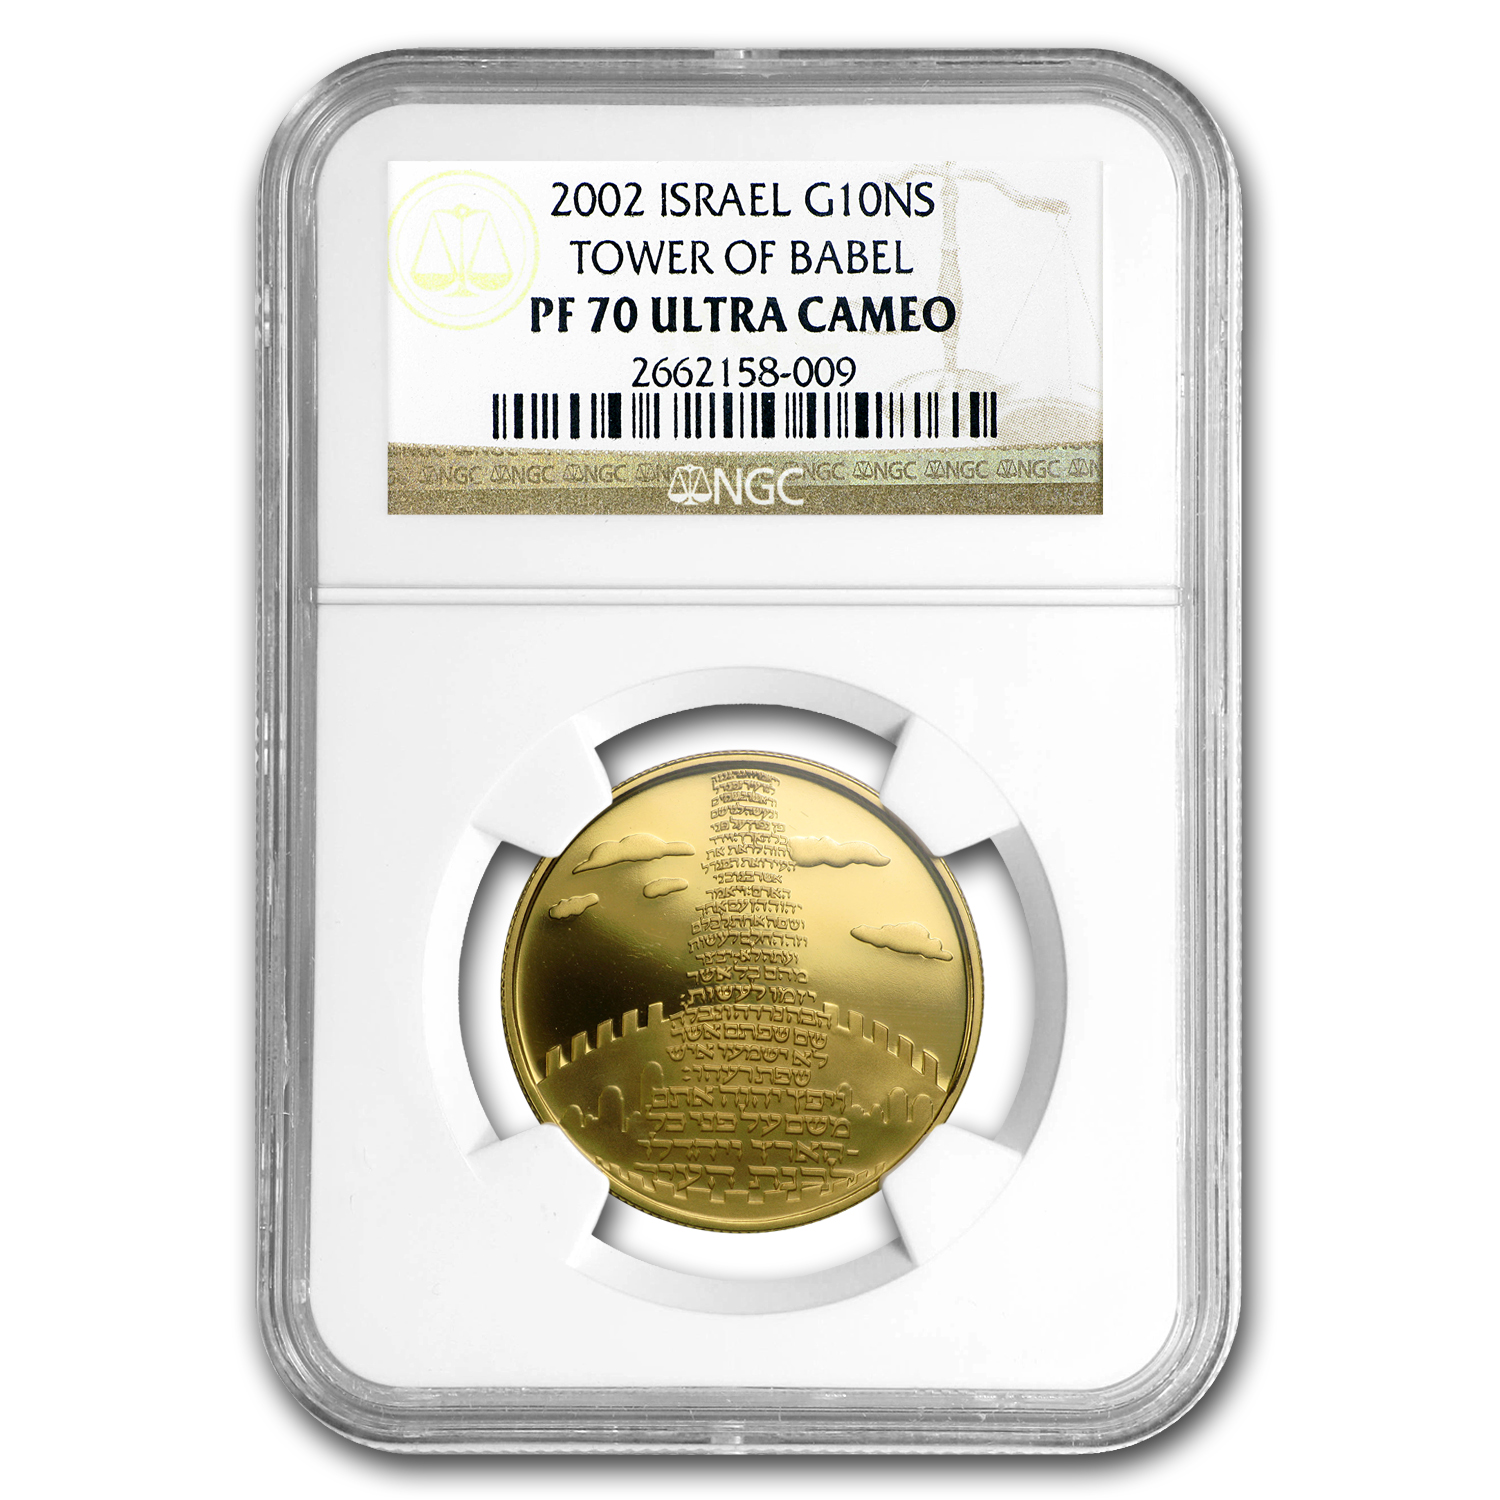 2002 Israel 1/2 oz Proof Gold Tower of Babel PF-70 NGC